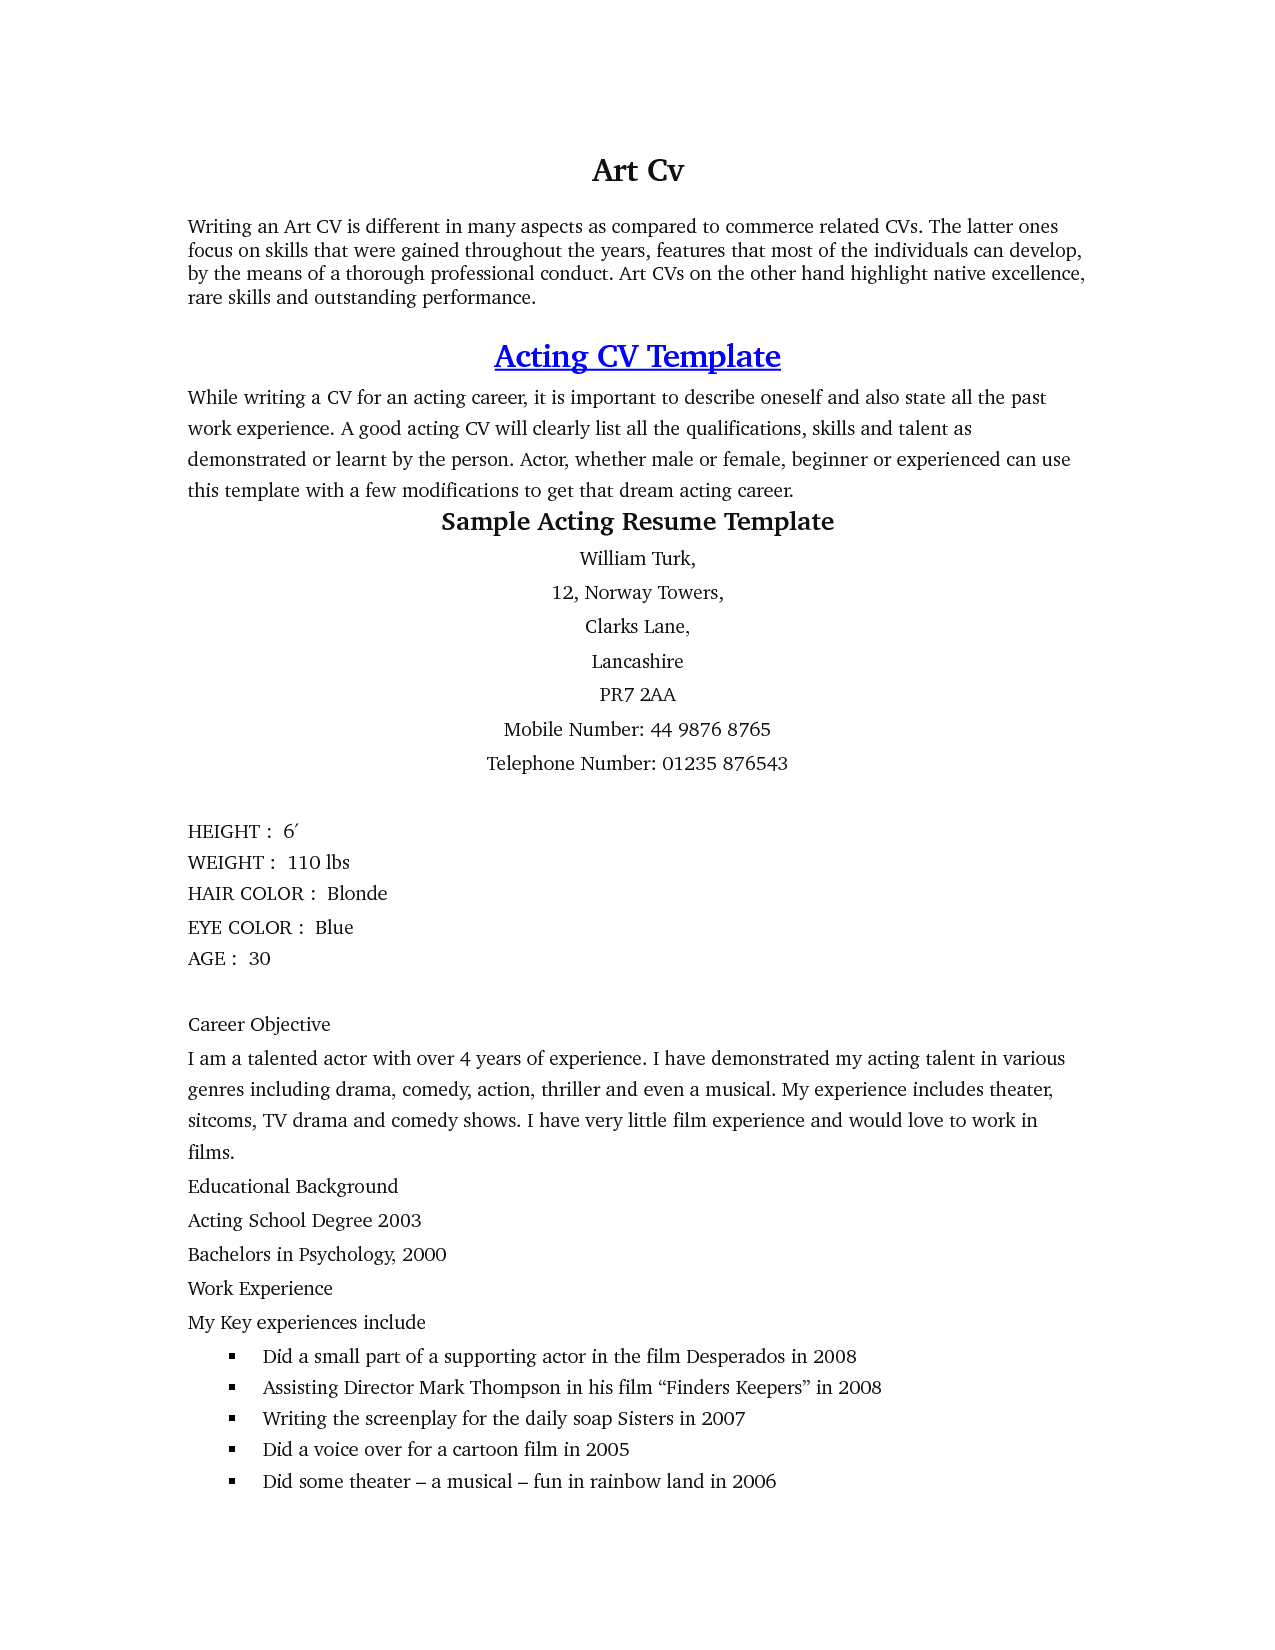 Awesome Acting Resume Sample Beginner   Http://www.resumecareer.info/acting